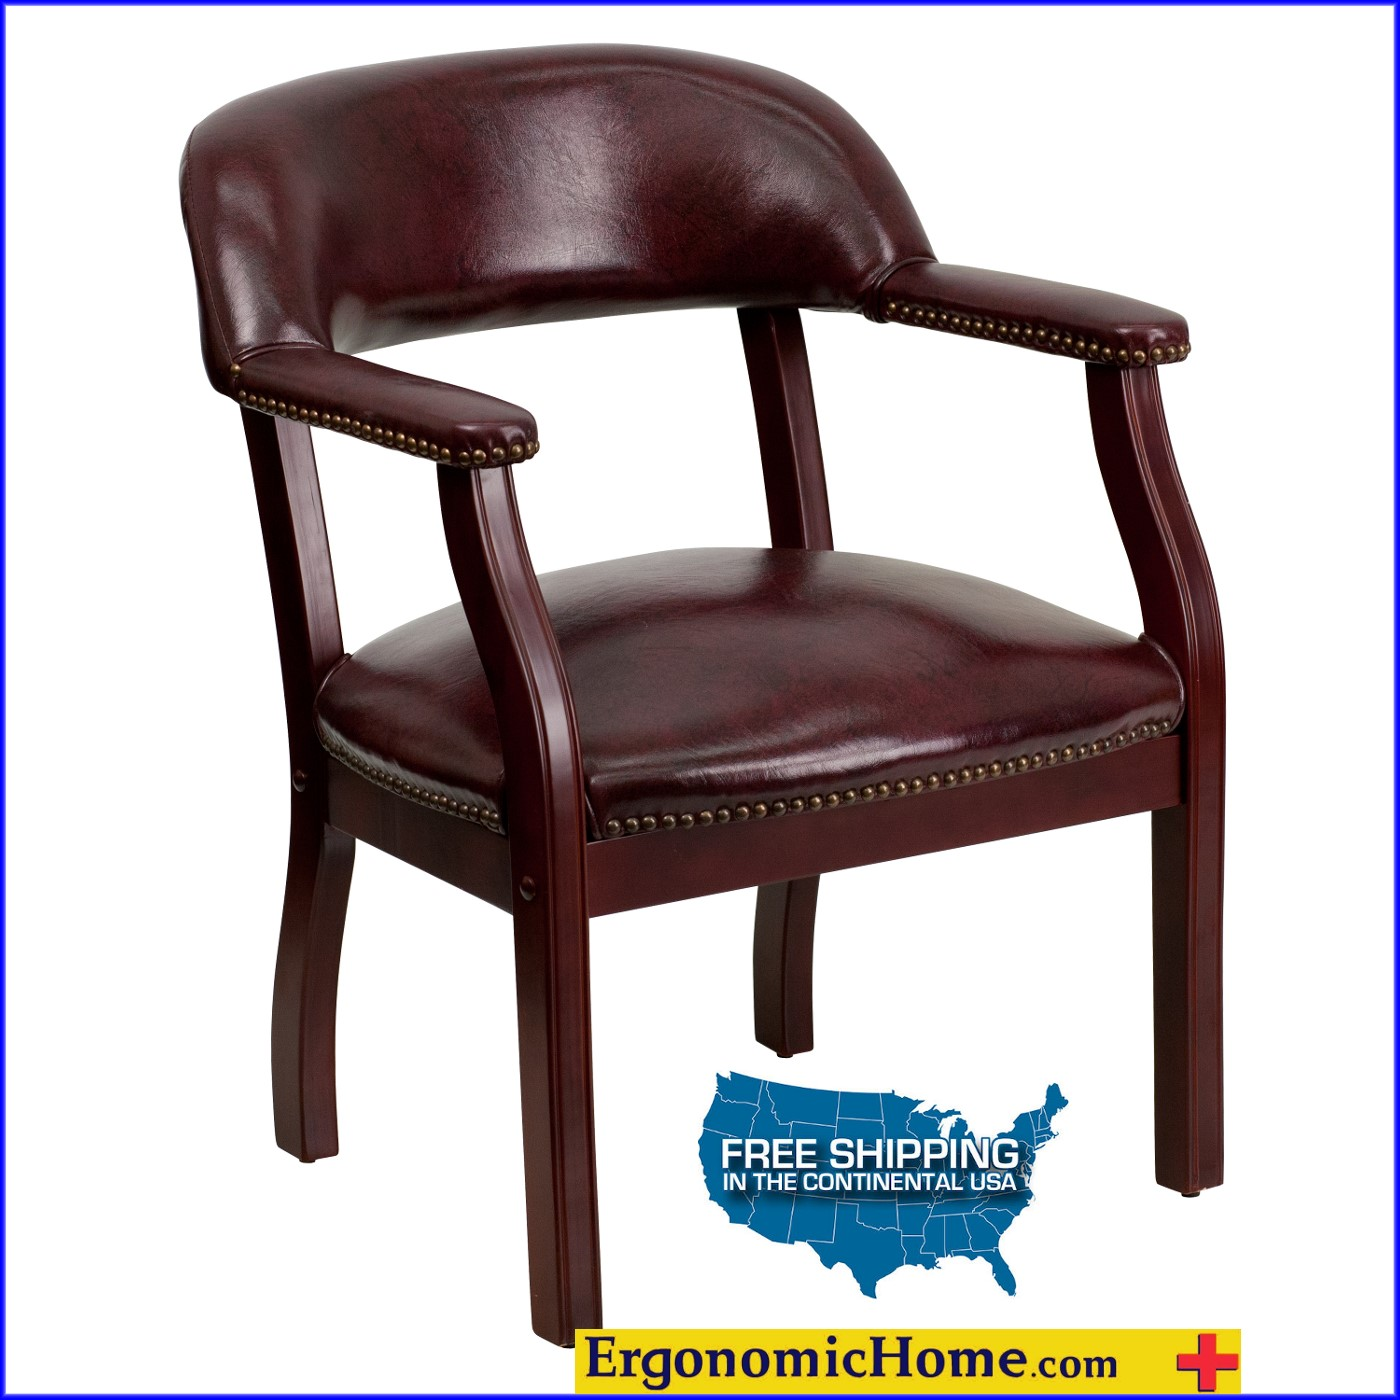 </b></font>Ergonomic Home Oxblood Vinyl Luxurious Conference Chair/Guest Chair EH-B-Z105-OXBLOOD-GG <b></font>. </b></font></b>